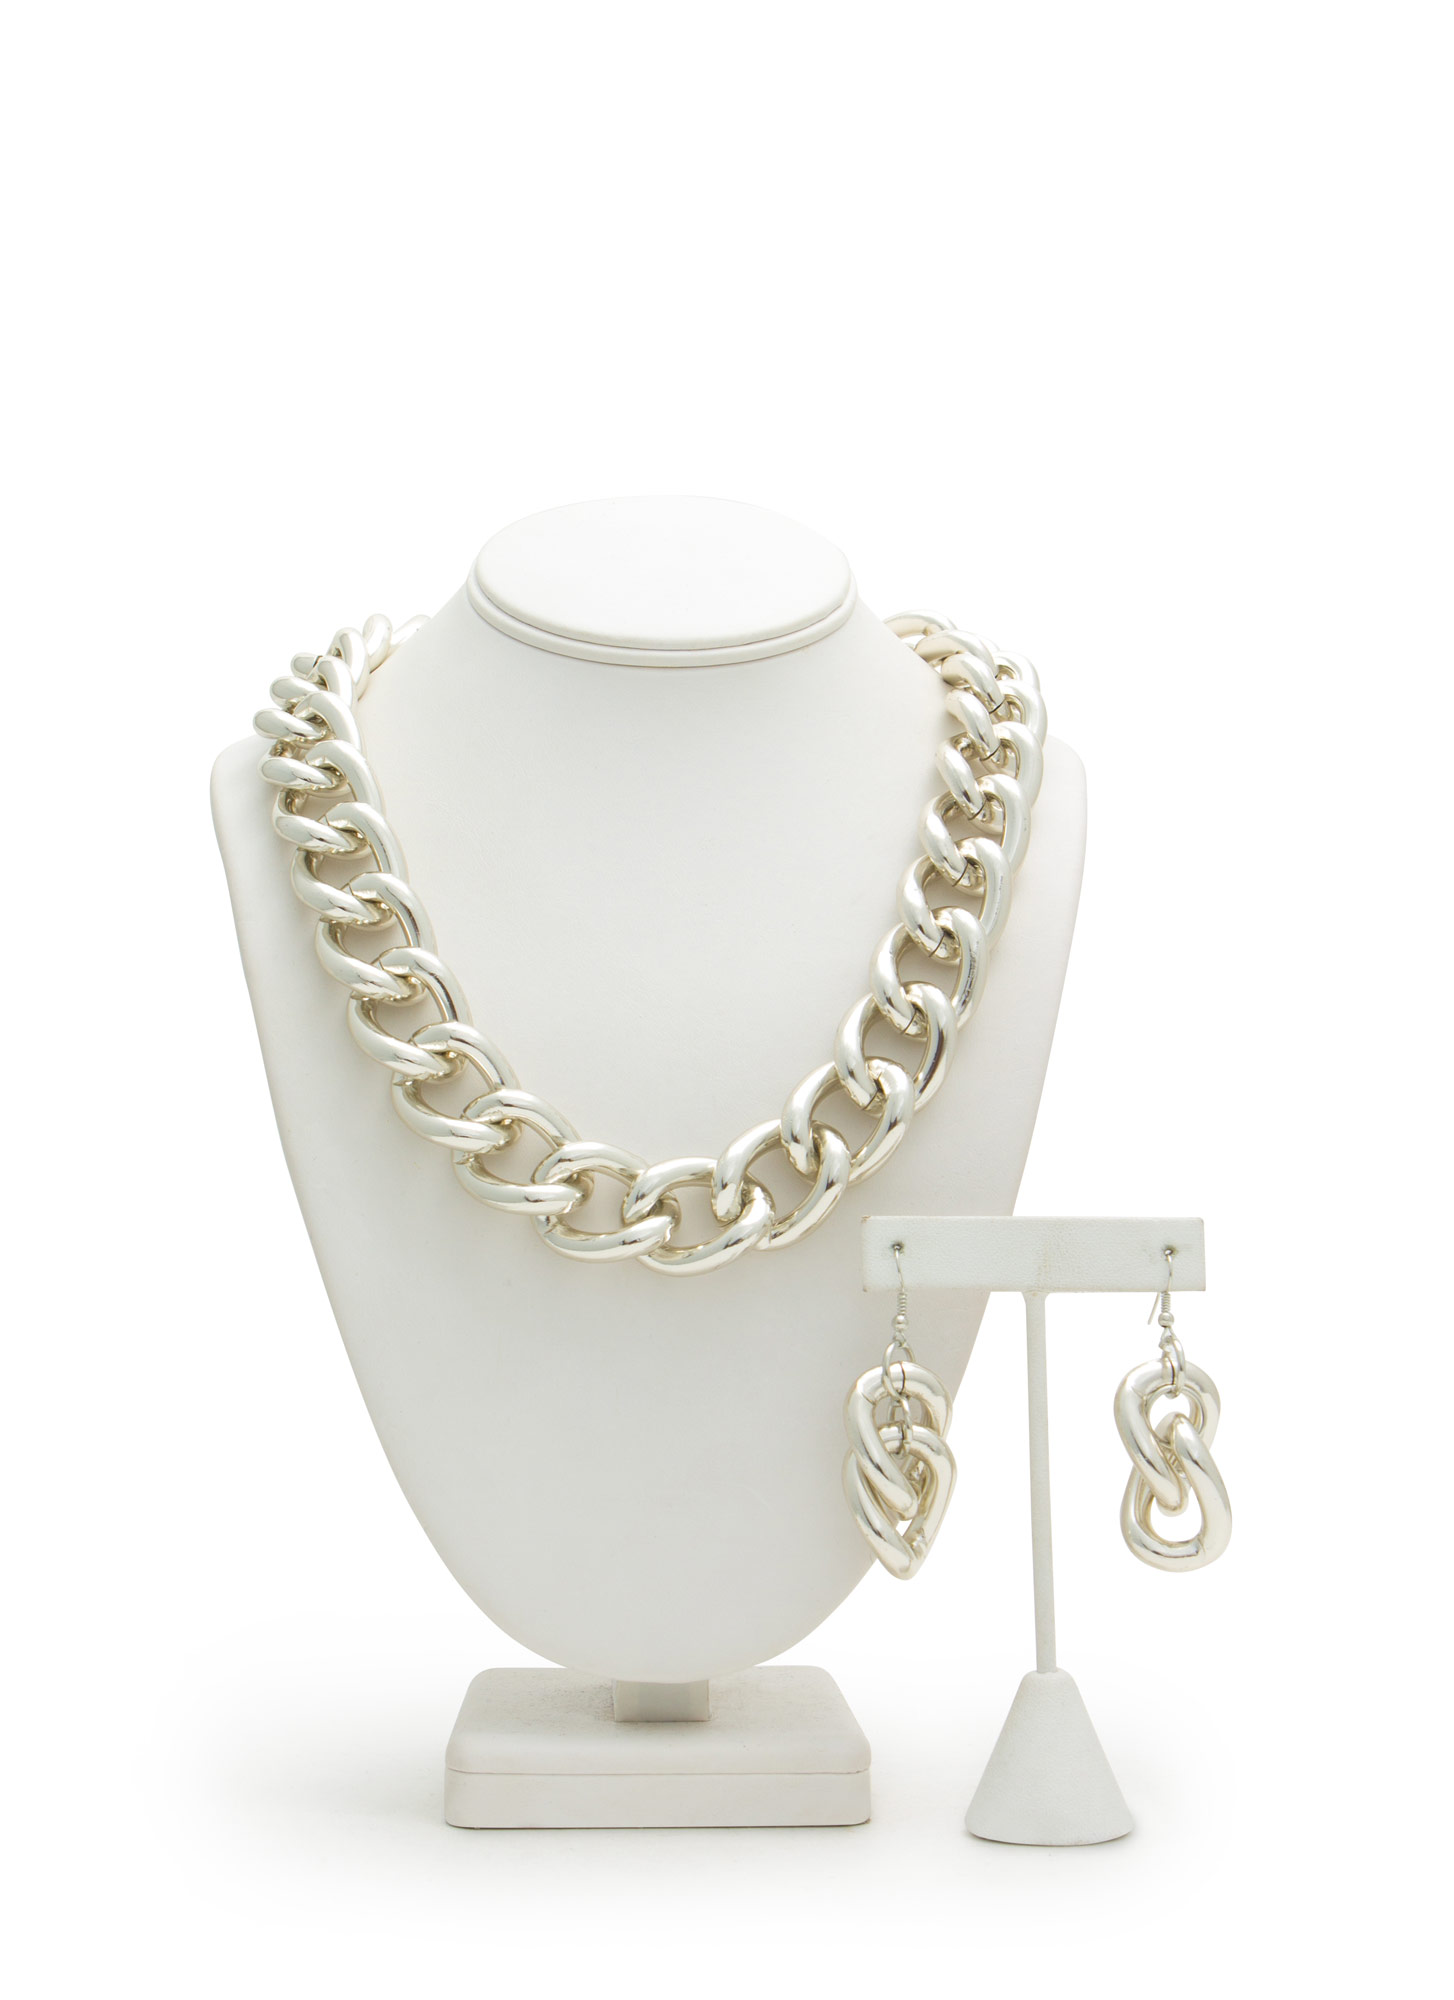 Ain't No Thang Chain Necklace Set SILVER